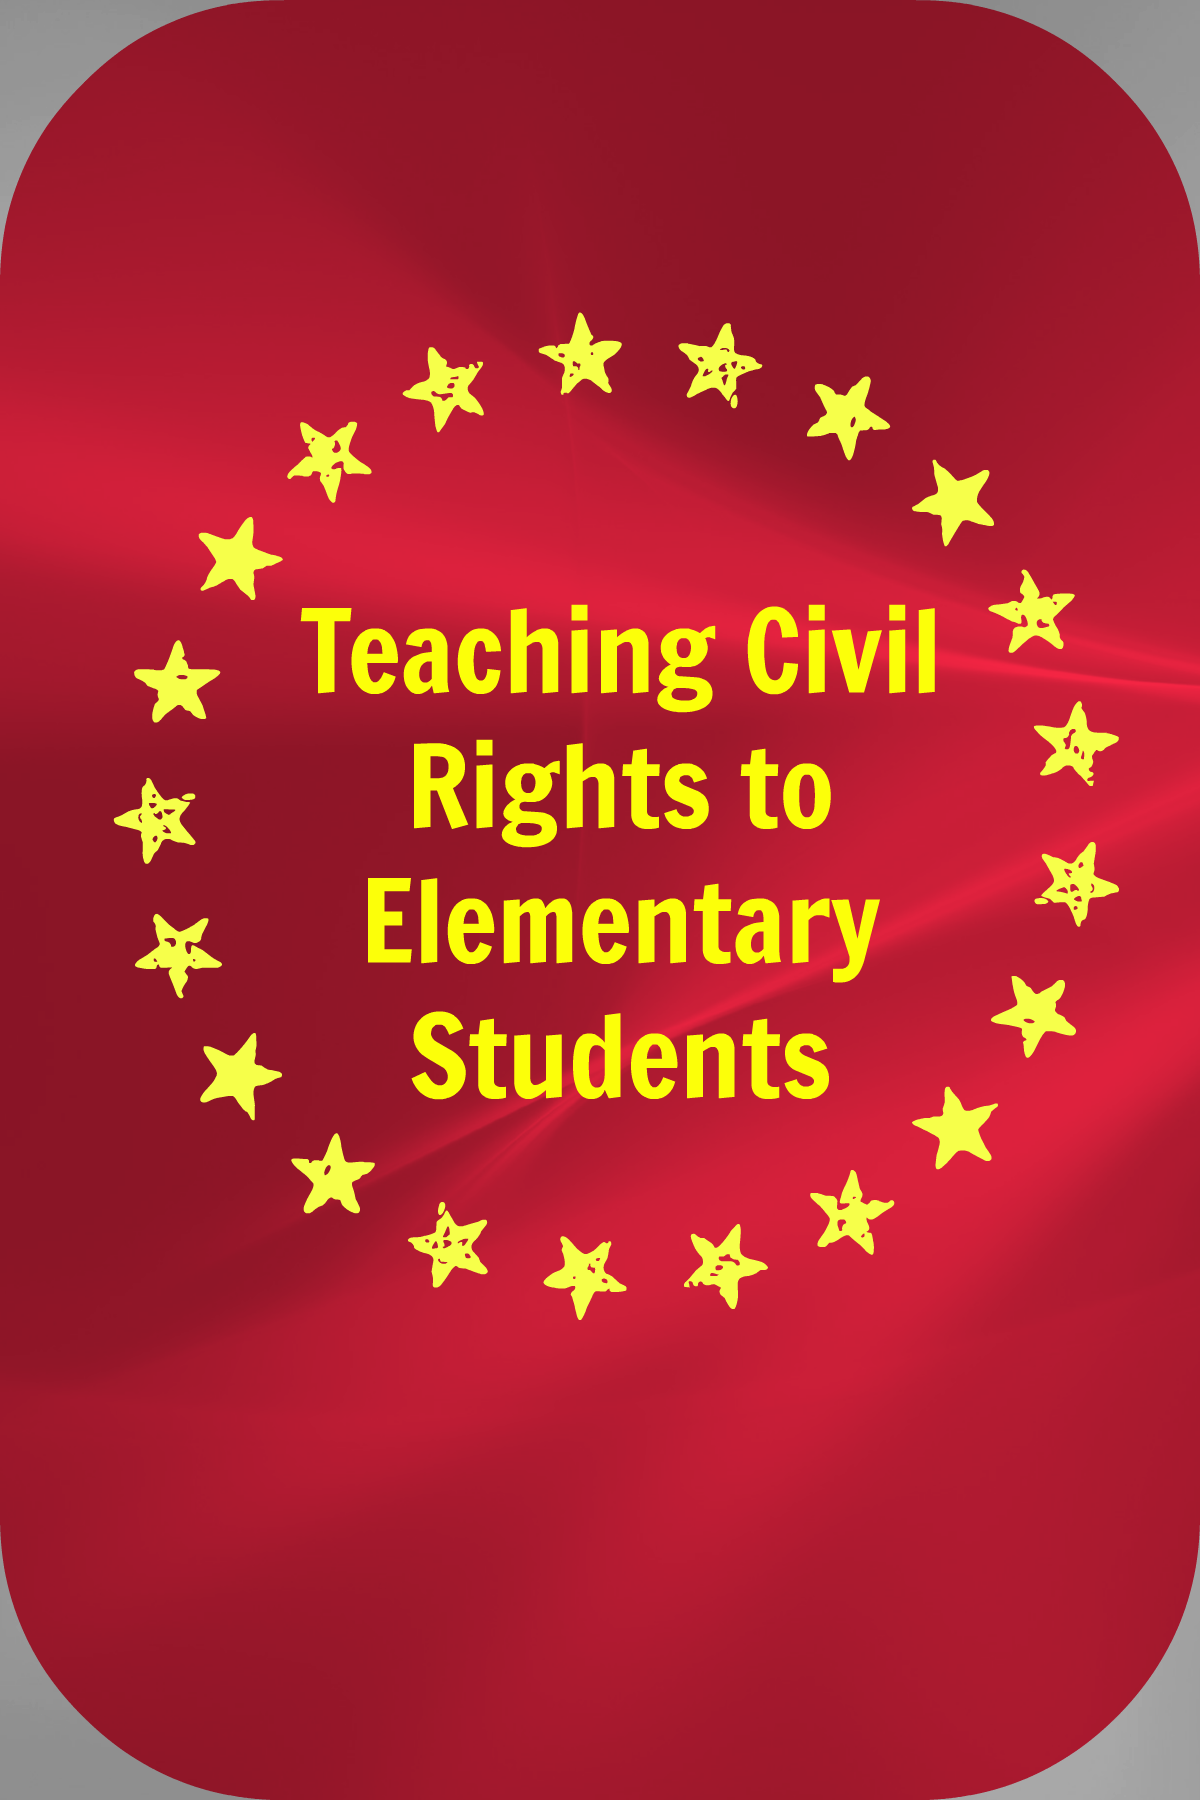 Teaching Civil Rights to Elementary Students | Teach Them ...